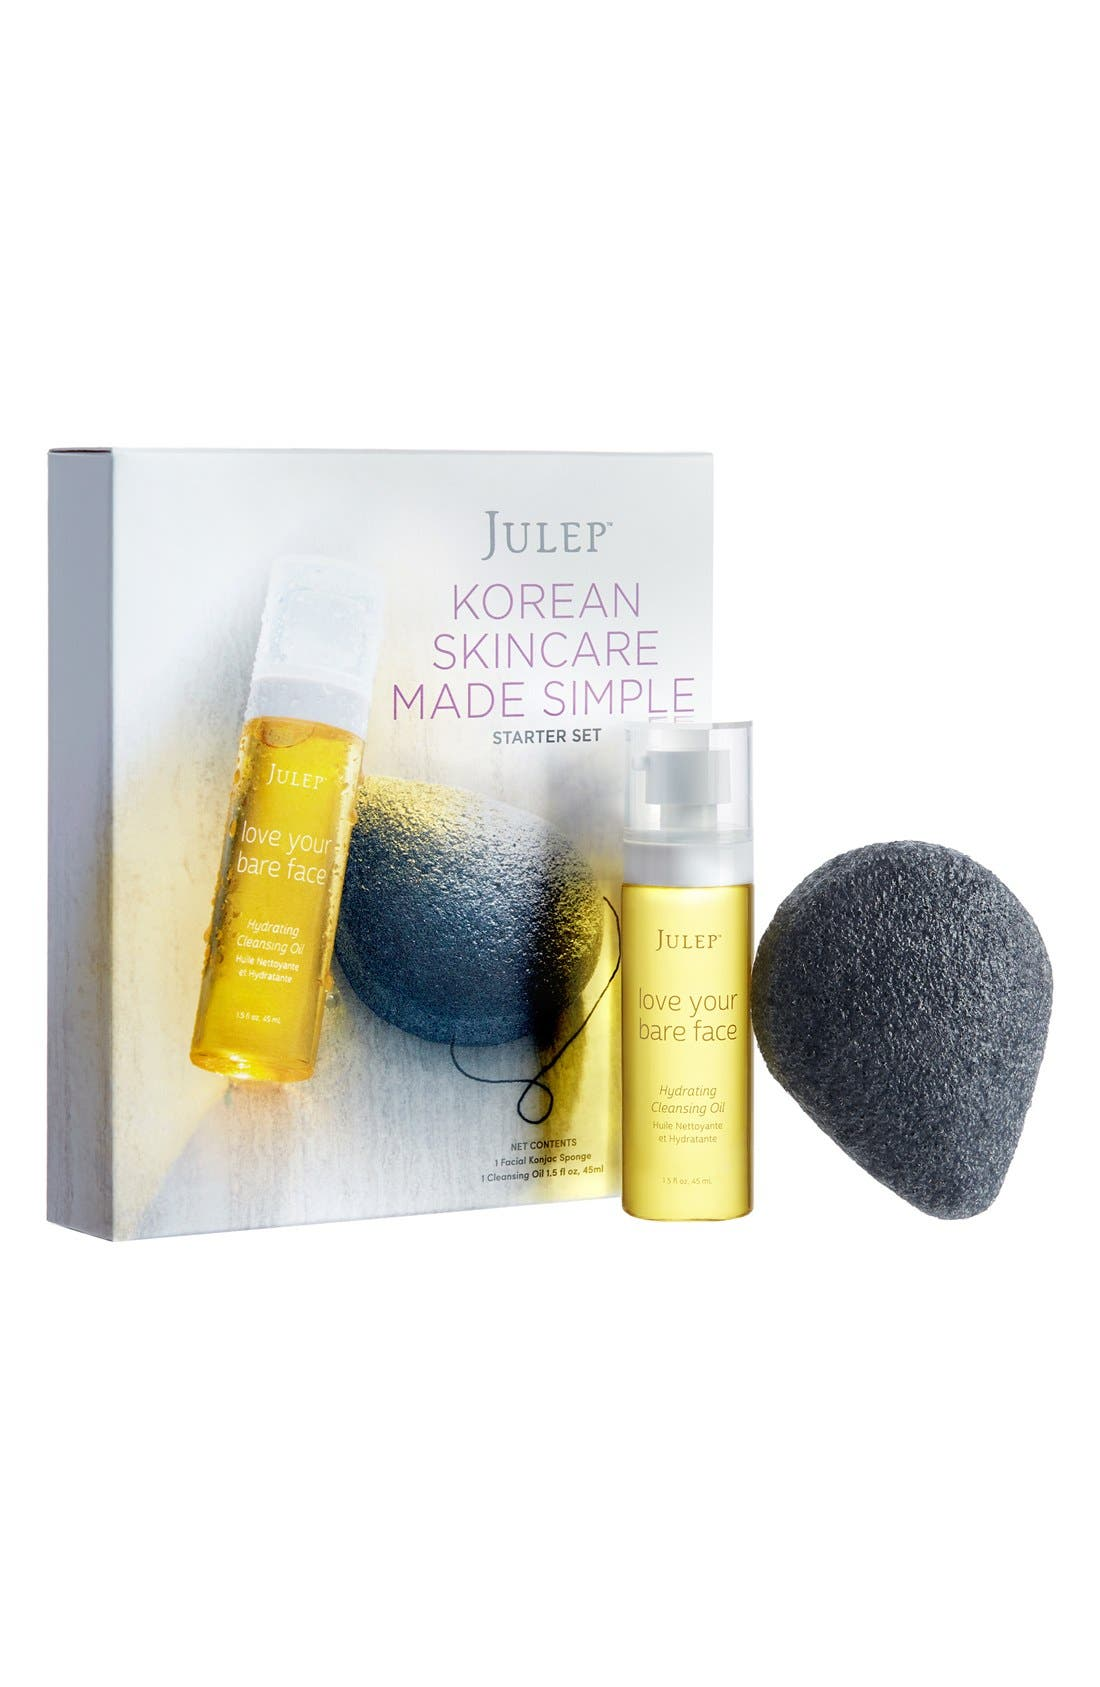 Julep™ 'Korean Skincare Made Simple' Starter Set ($24 Value)